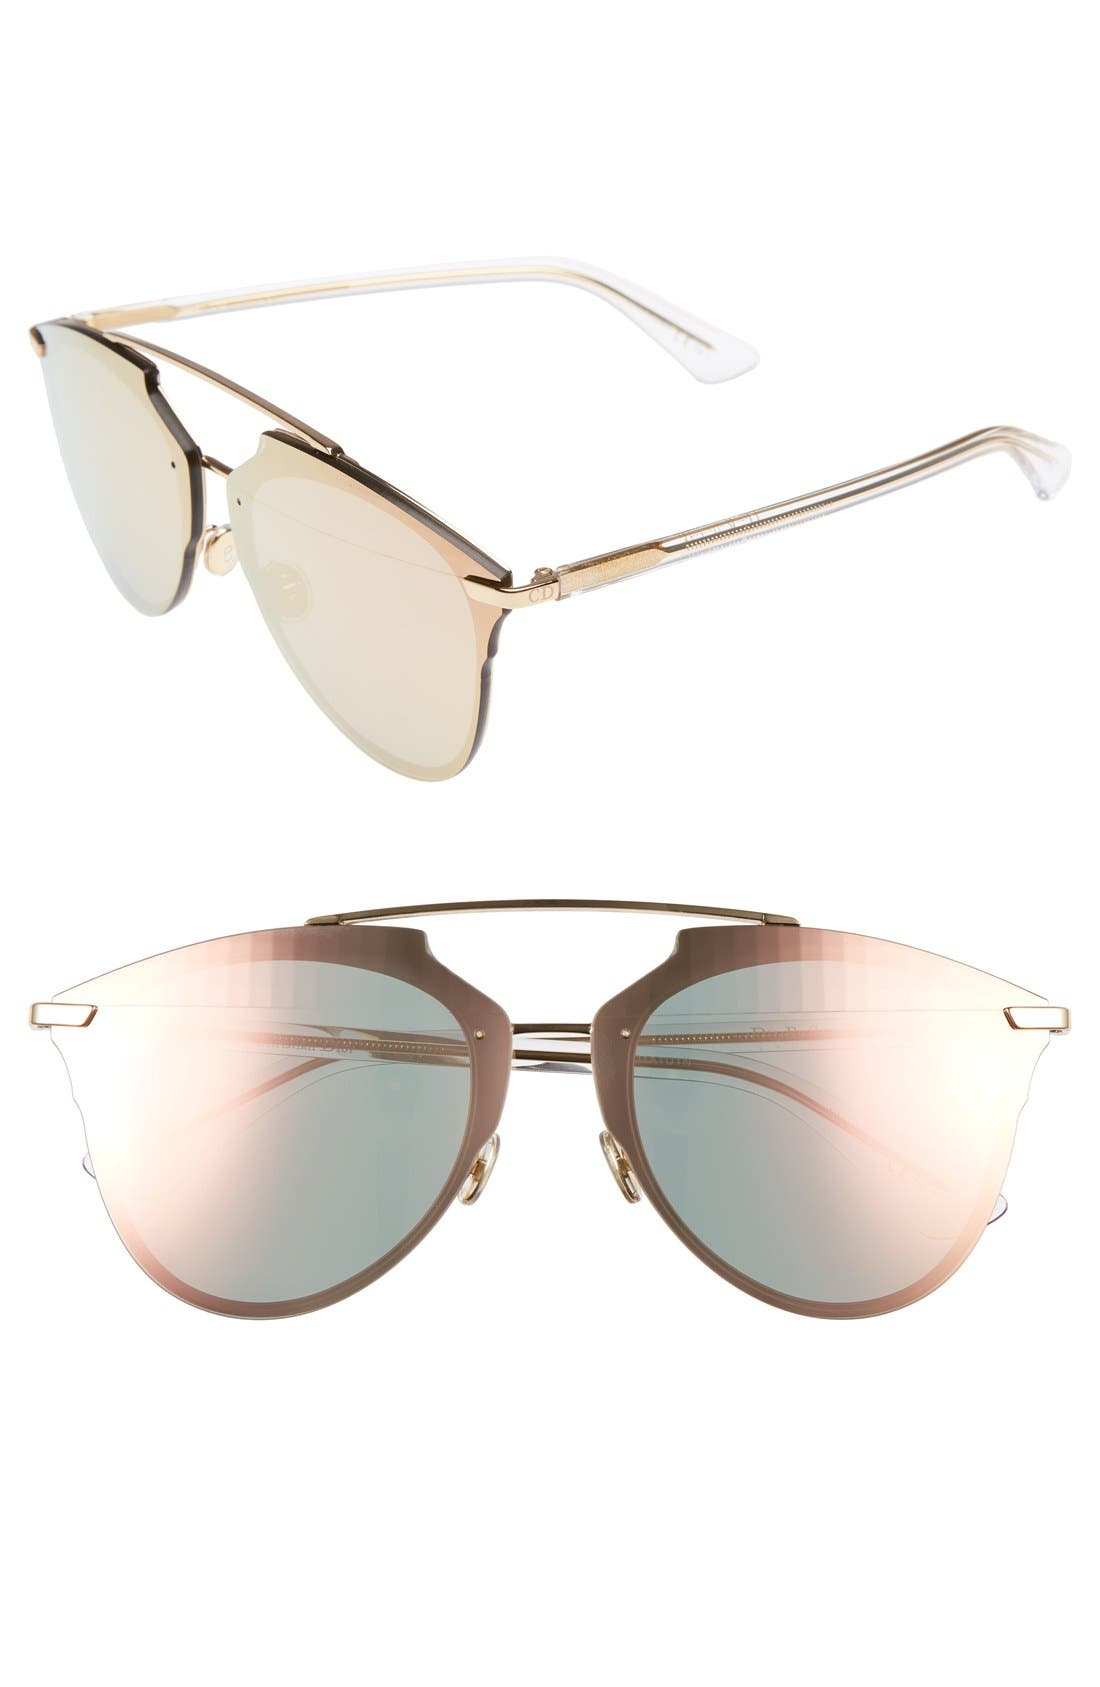 Reflected Prism 63mm Oversize Mirrored Brow Bar Sunglasses,                         Main,                         color, Gold/ Crystal